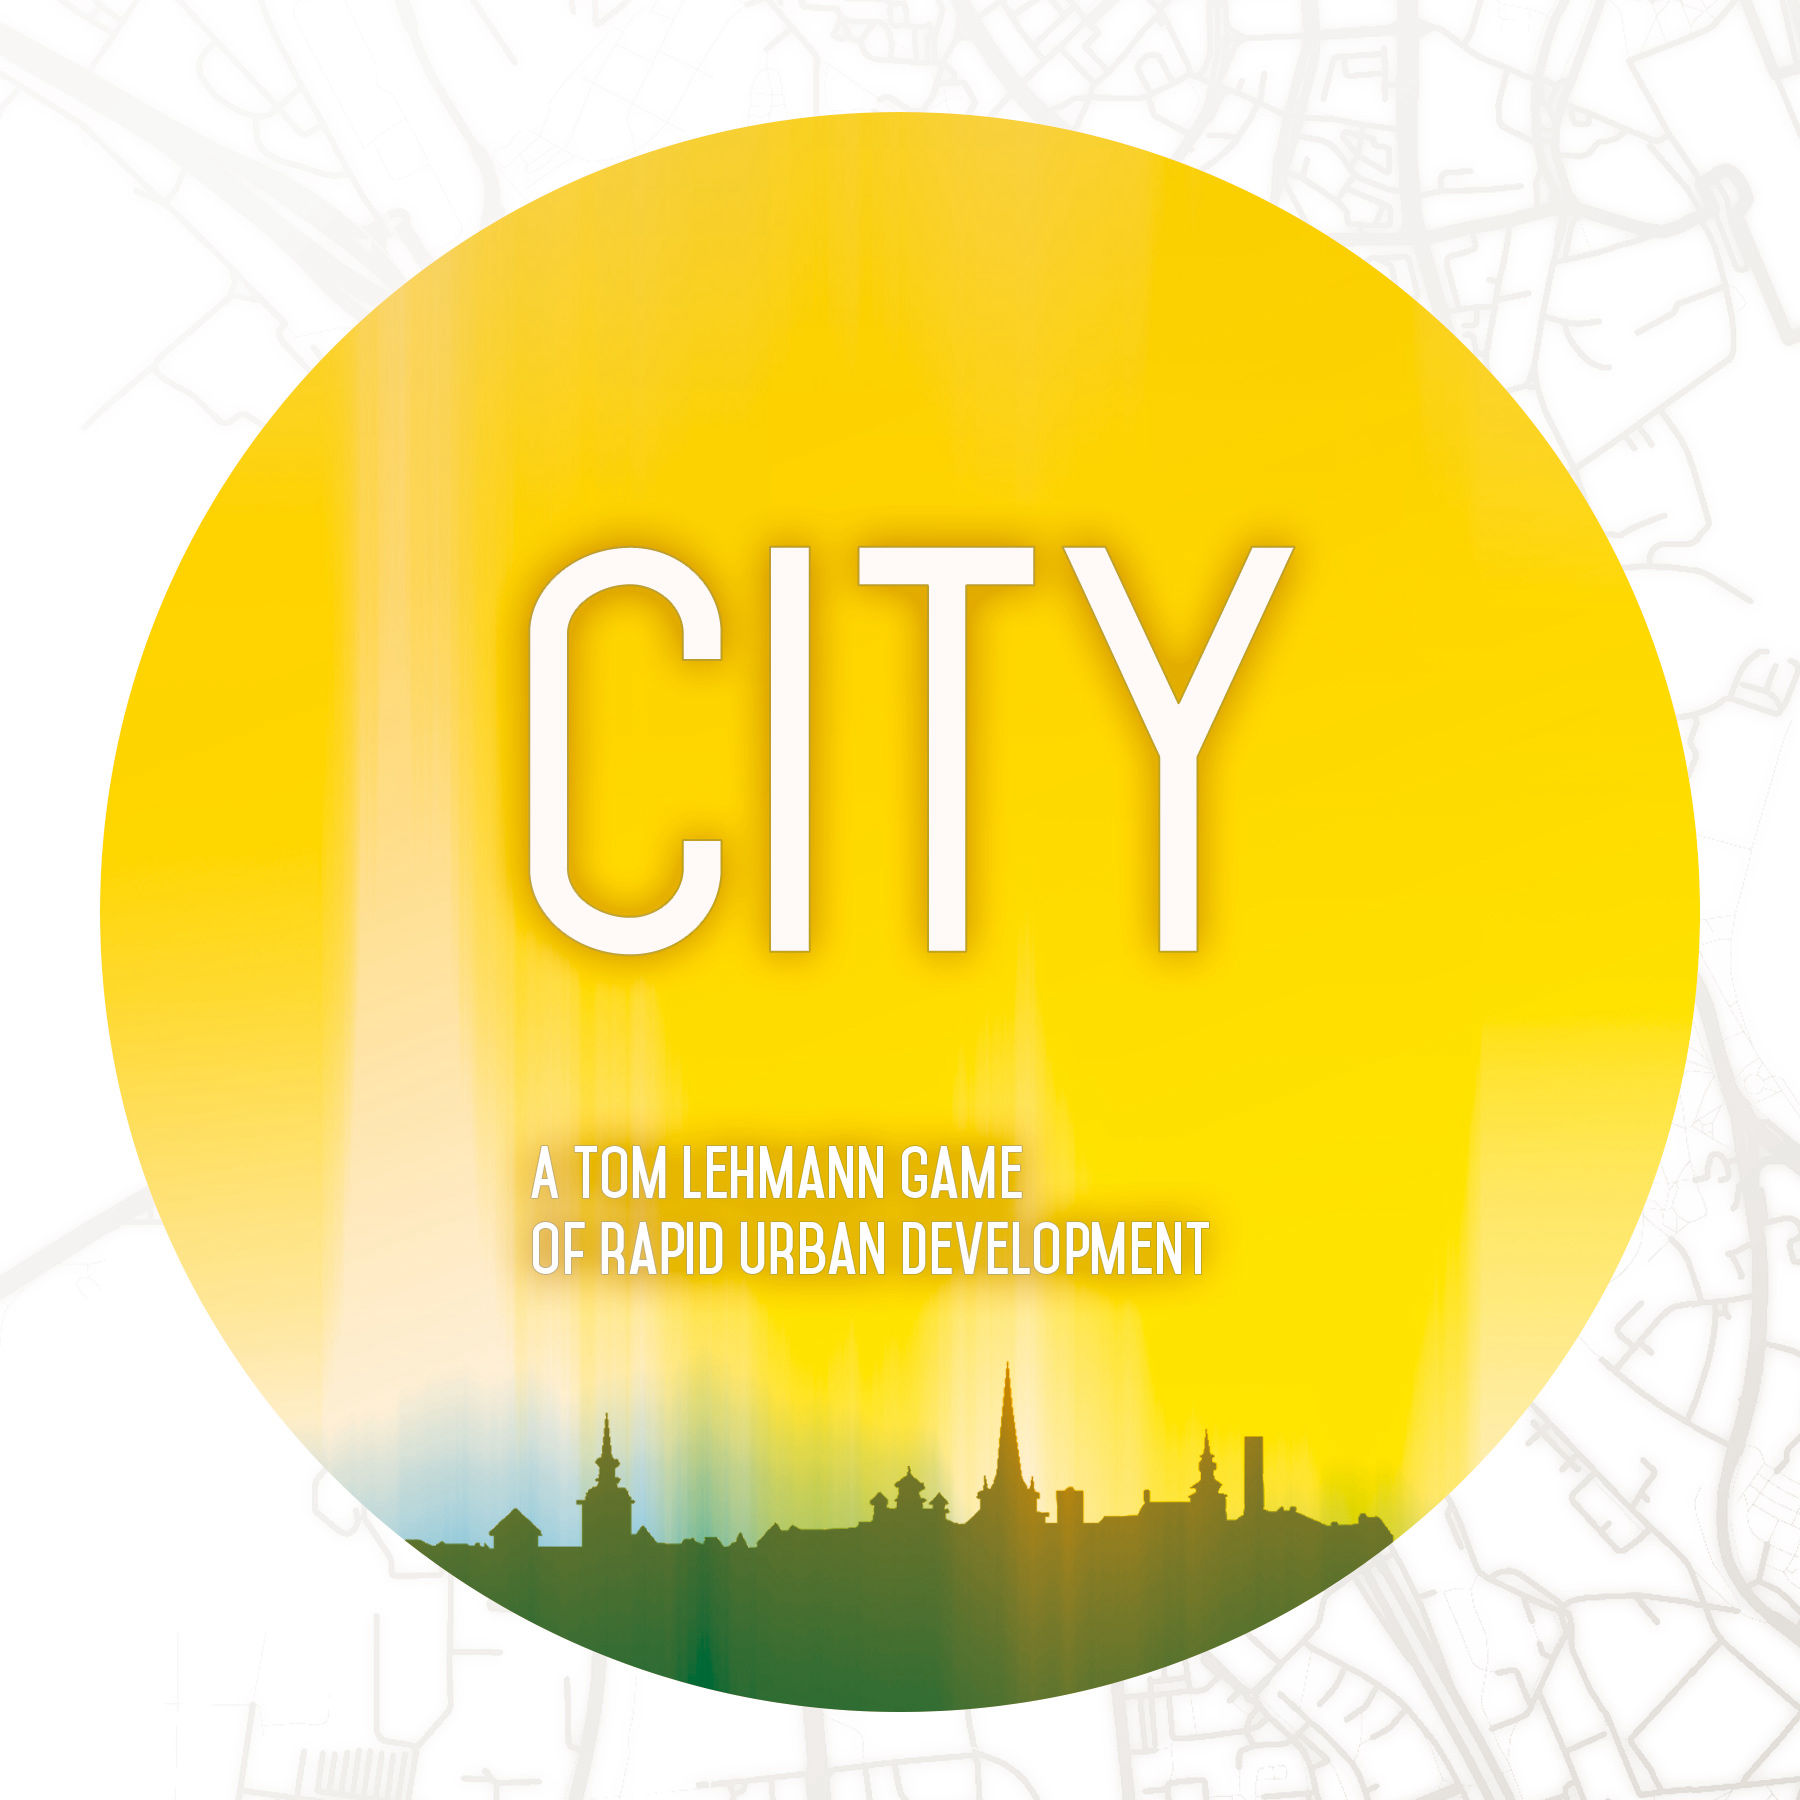 Language-independent design for The City by Tom Lehmann